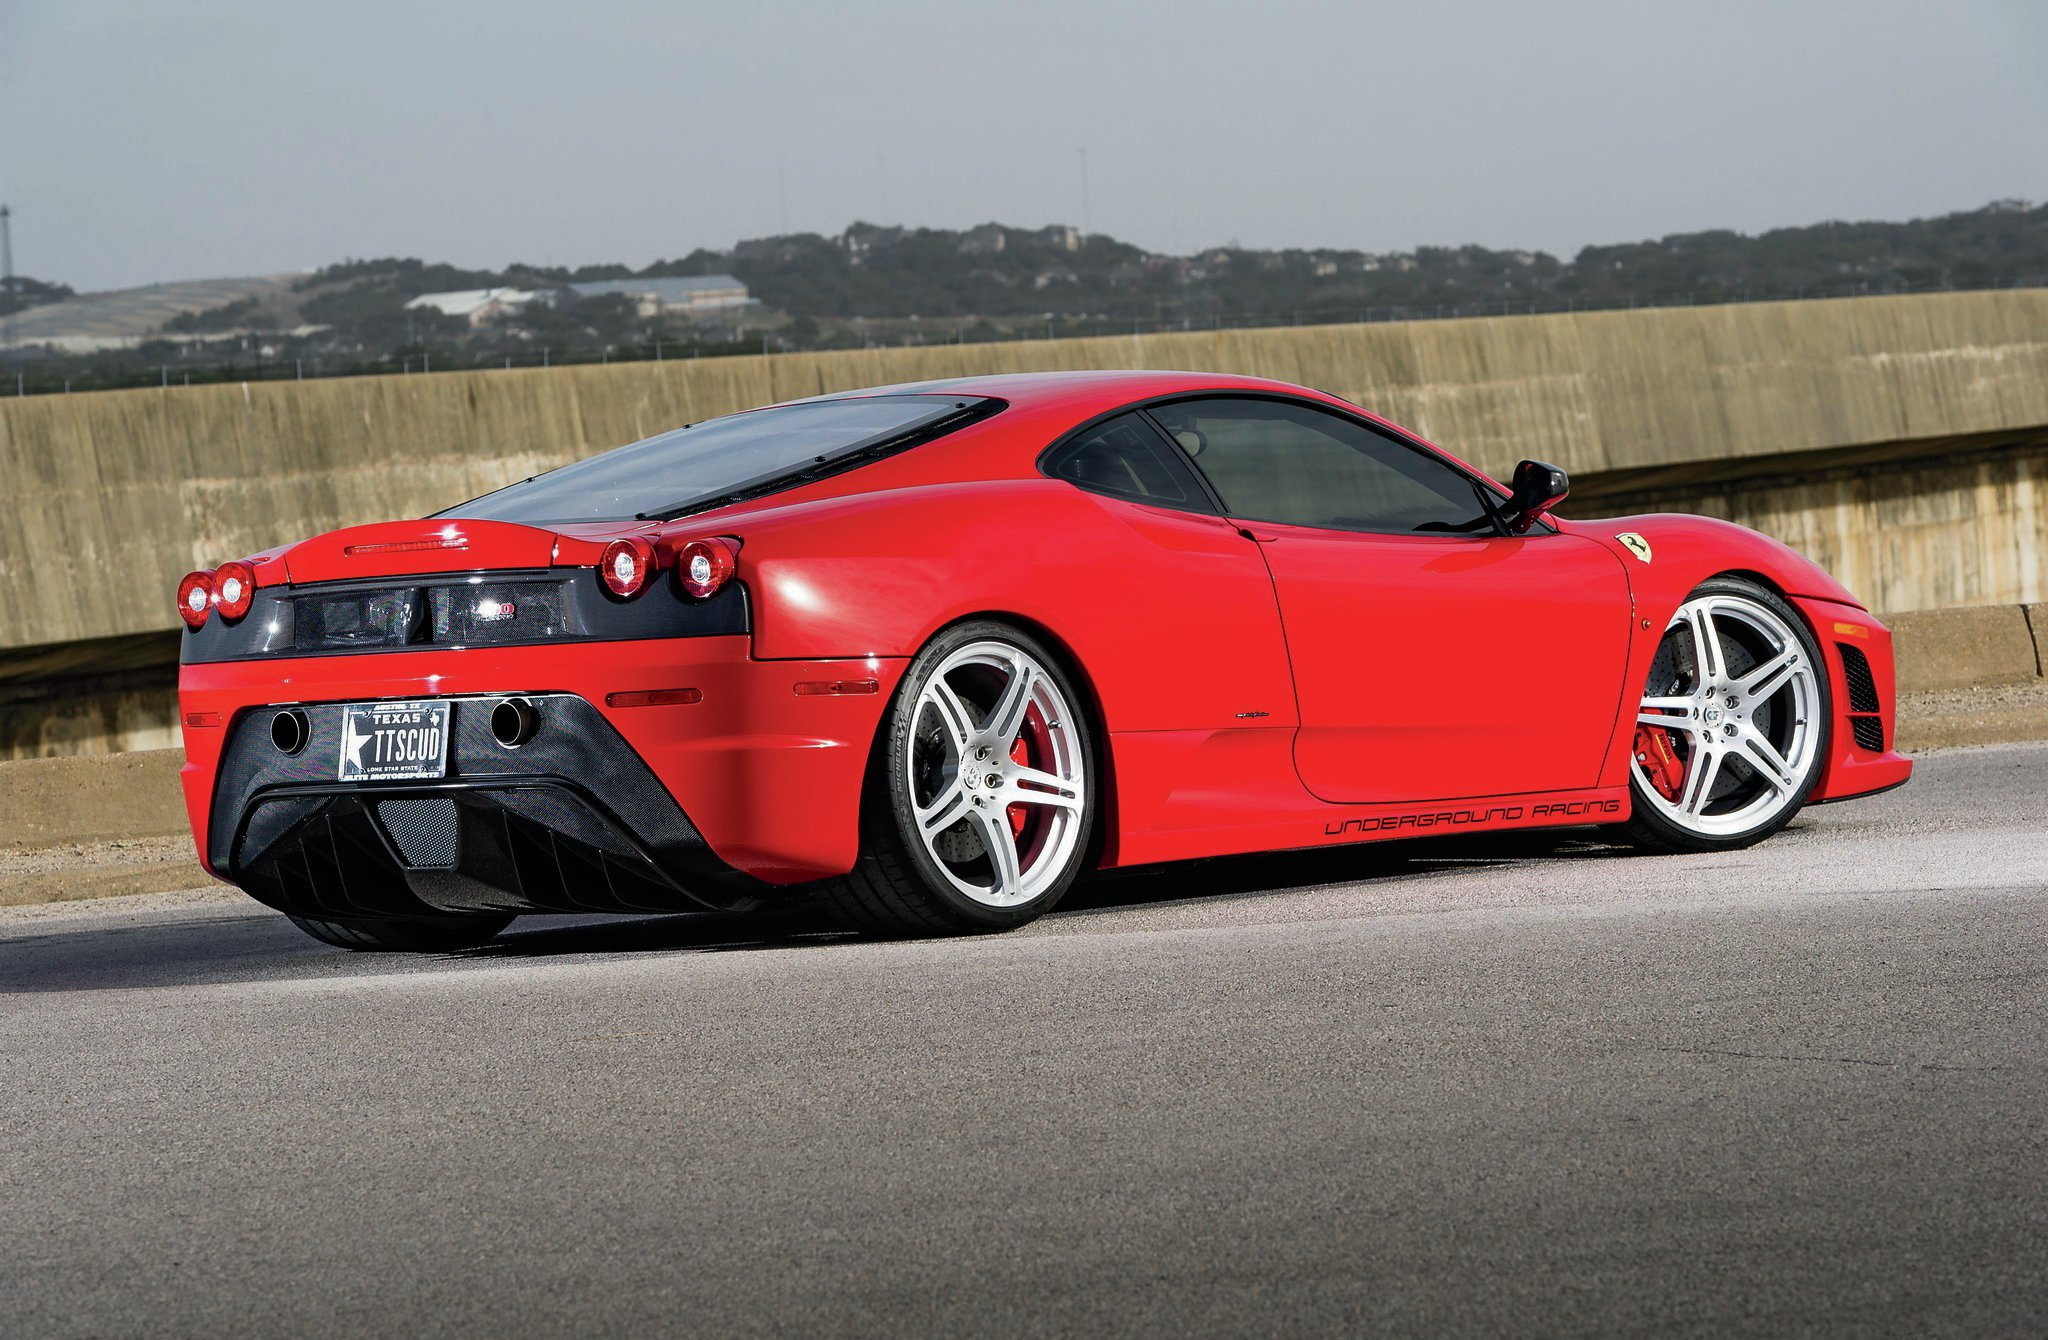 Meet The 700 Hp Ferrari F430 Scuderia Modified By